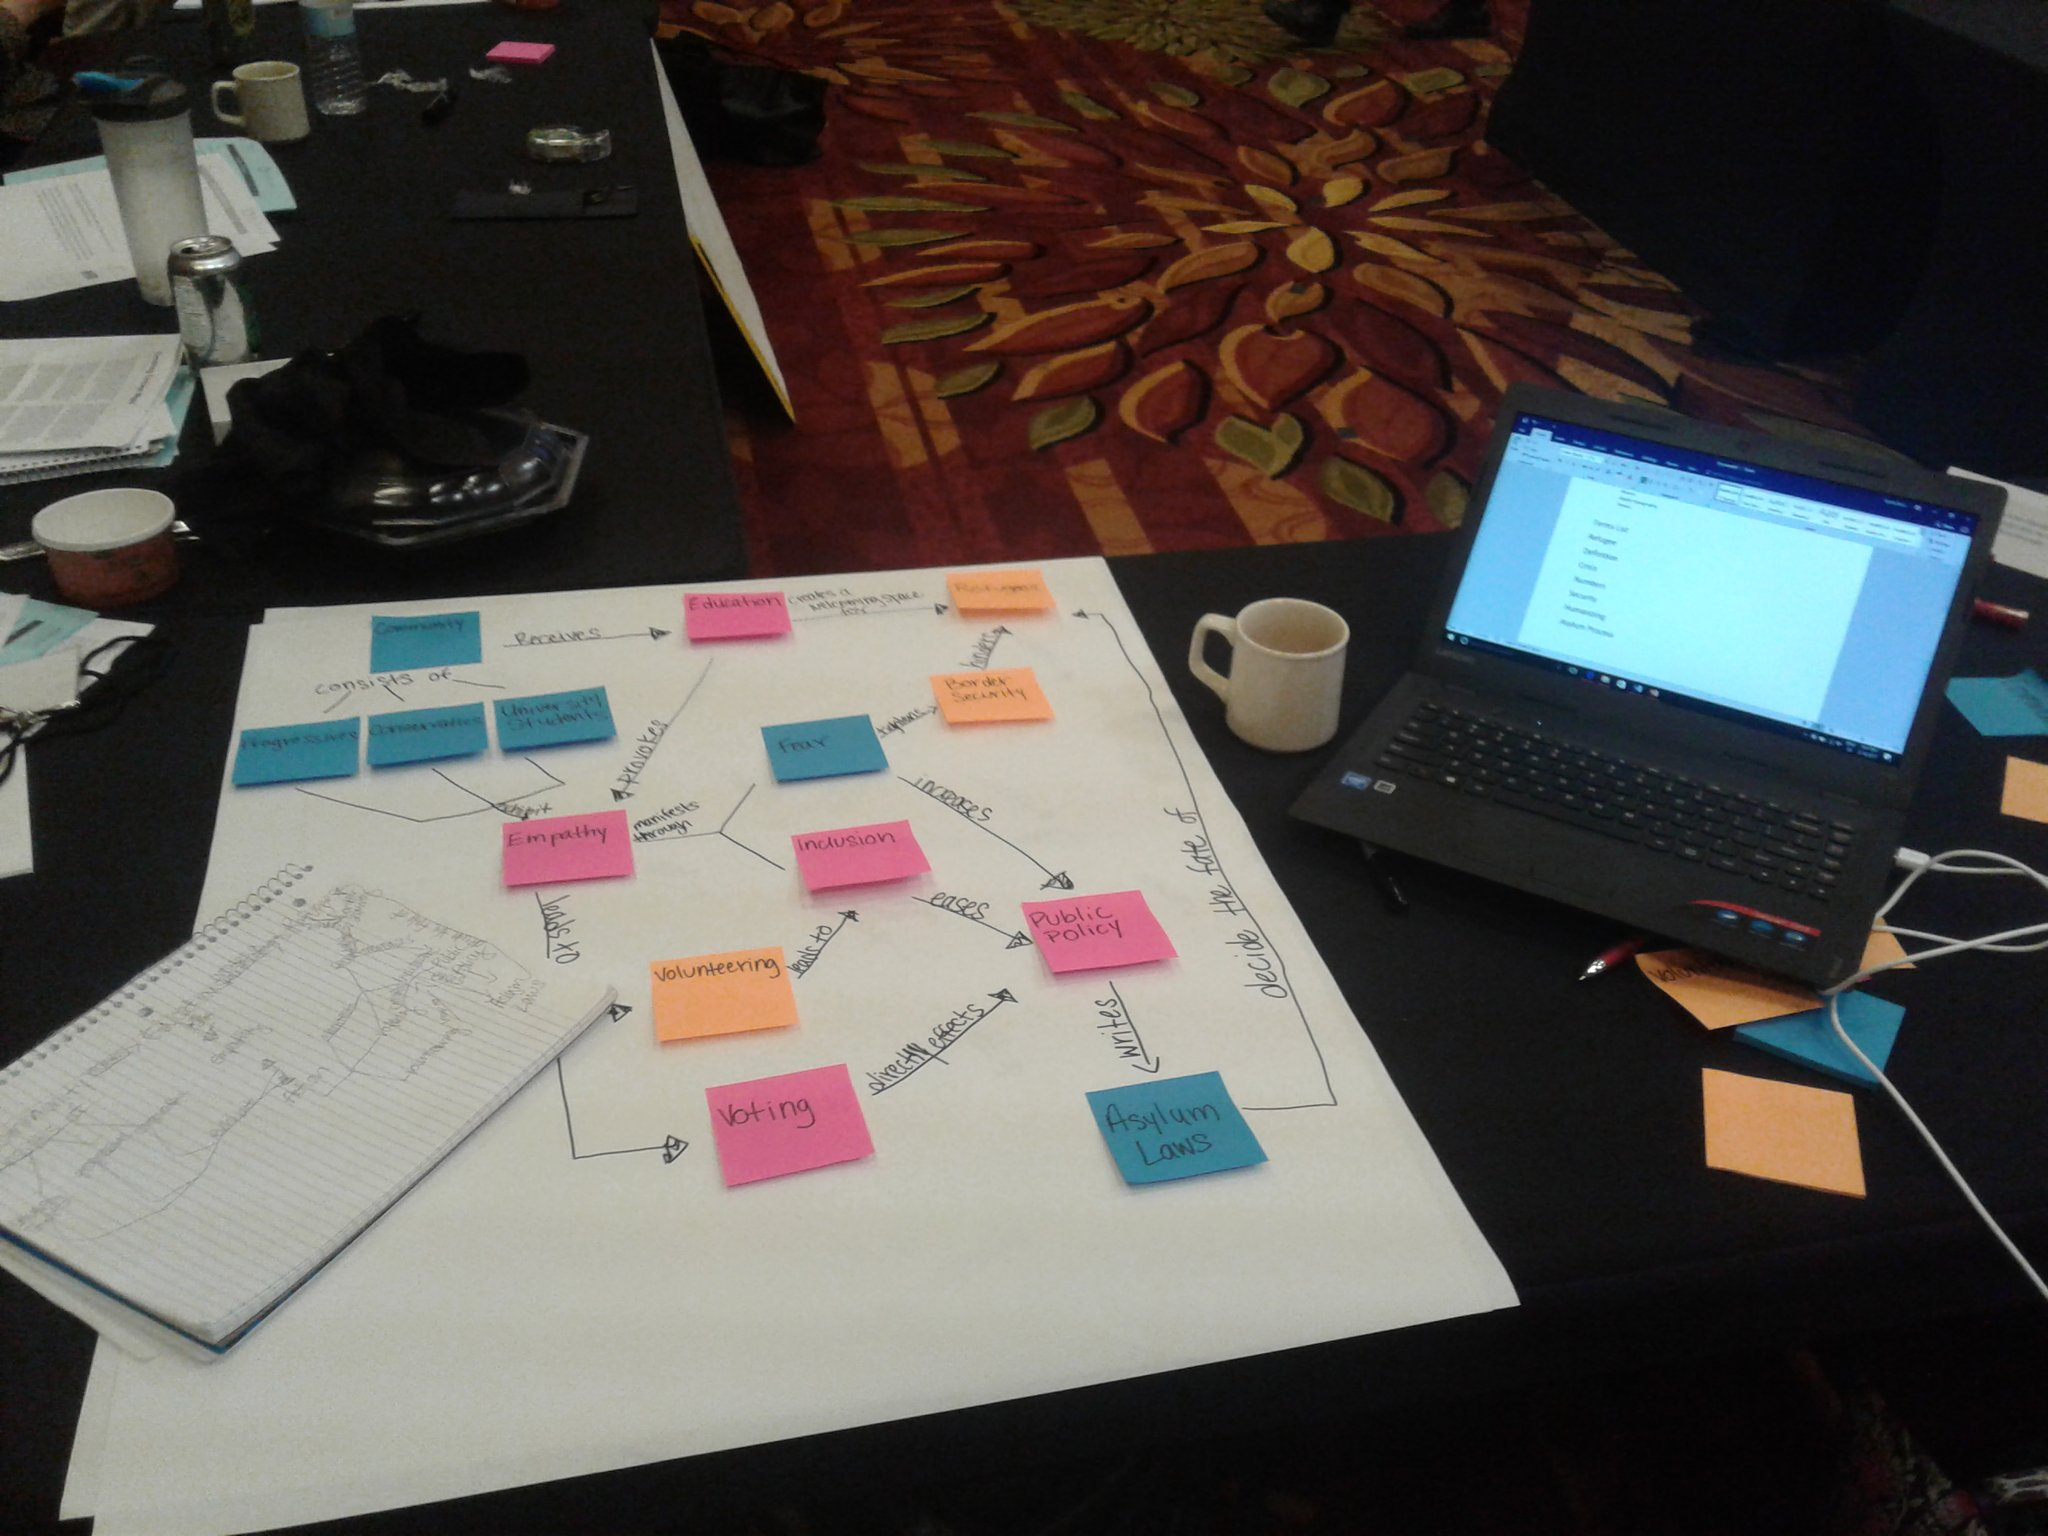 Concept mapping yesterday! It required 3 mugs of hot tea, a laptop, & a notebook, but I came out with some concrete connections. #DIcorps17 https://t.co/JCjLNp7FbV